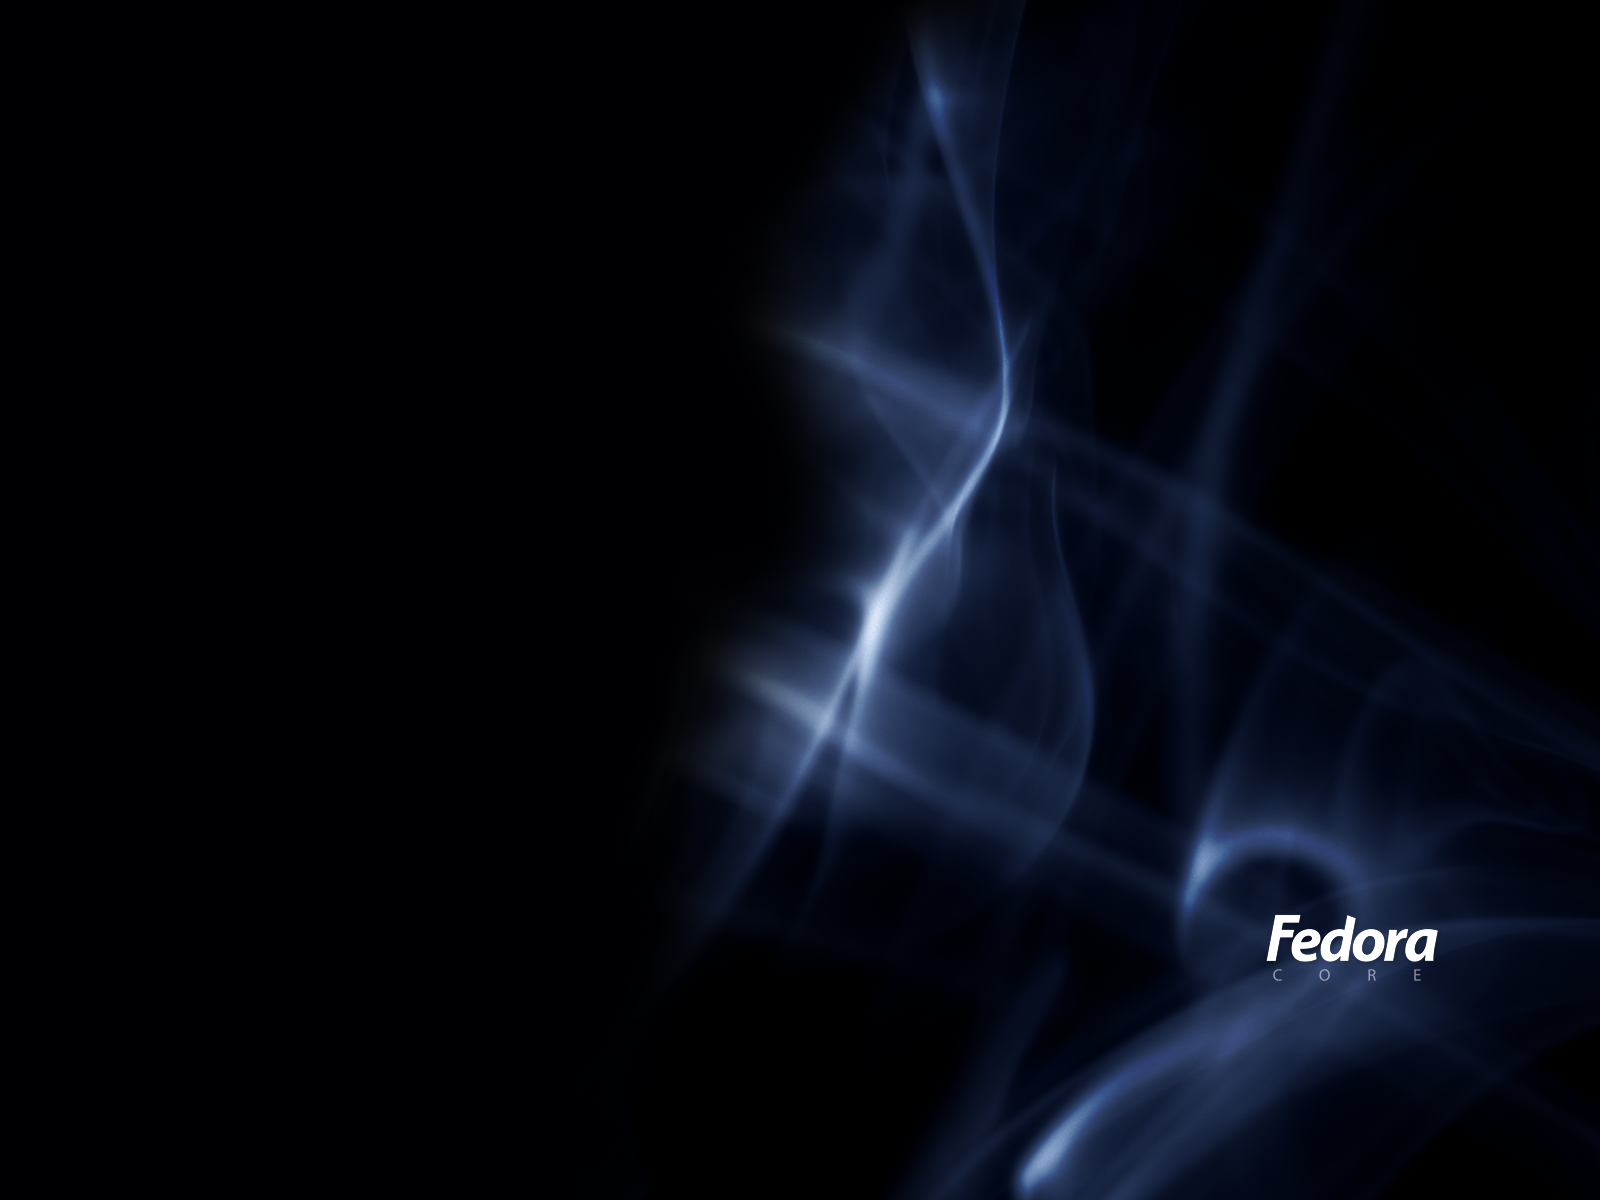 Quality Cool Fedora Wallpapers